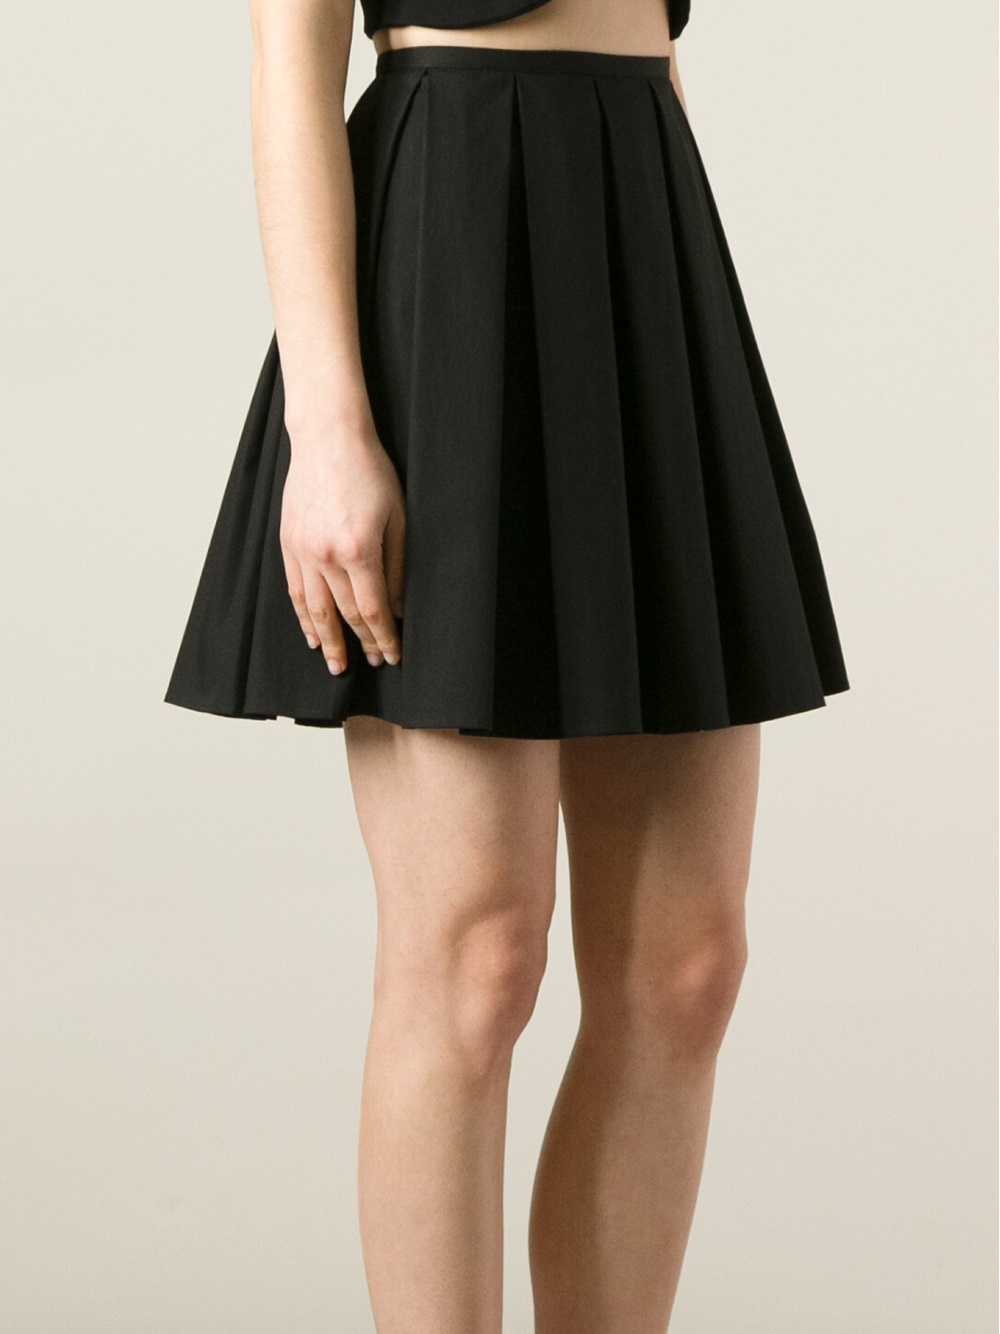 Shop black pleated skirt at Neiman Marcus, where you will find free shipping on the latest in fashion from top designers.